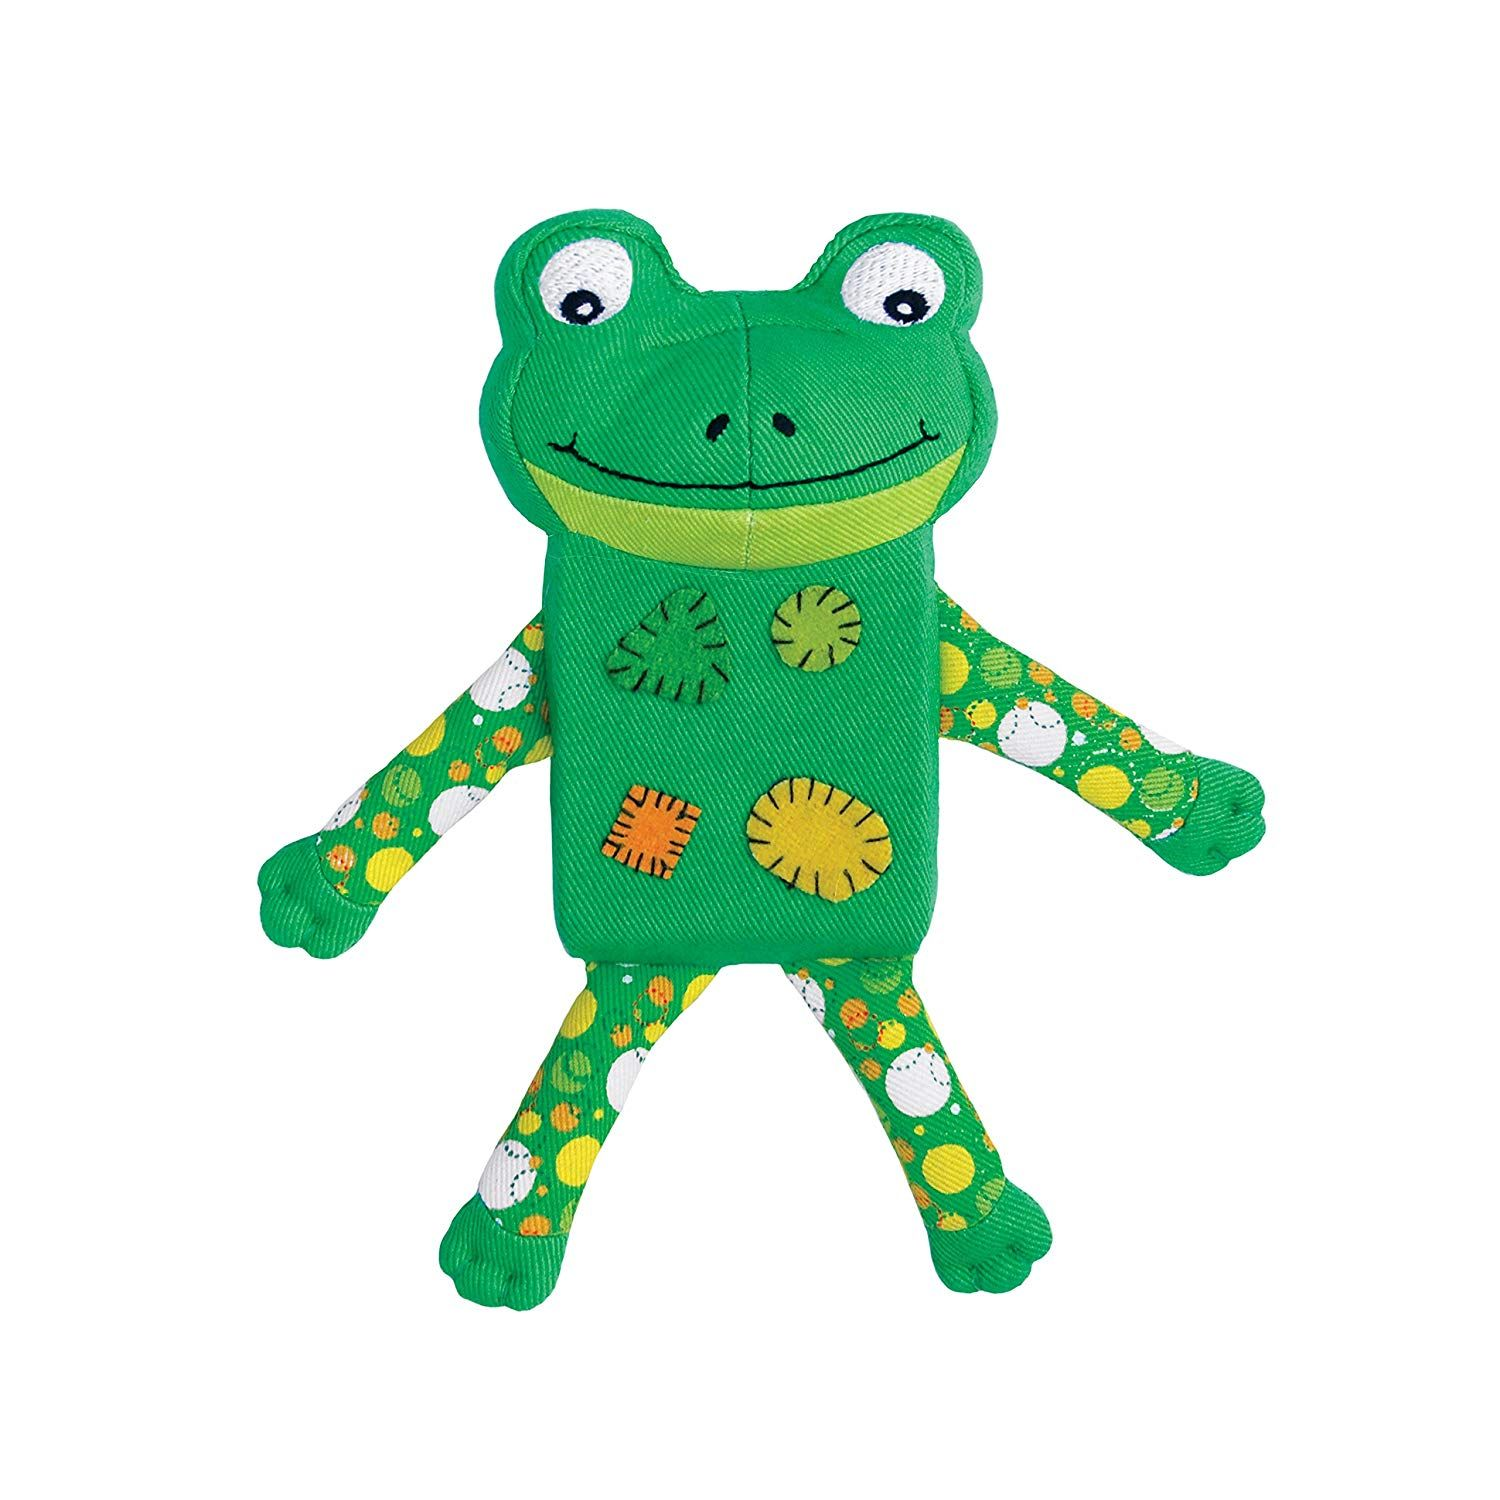 Kong Zillowz Frog Dog Toy Small Green We Appreciate You For